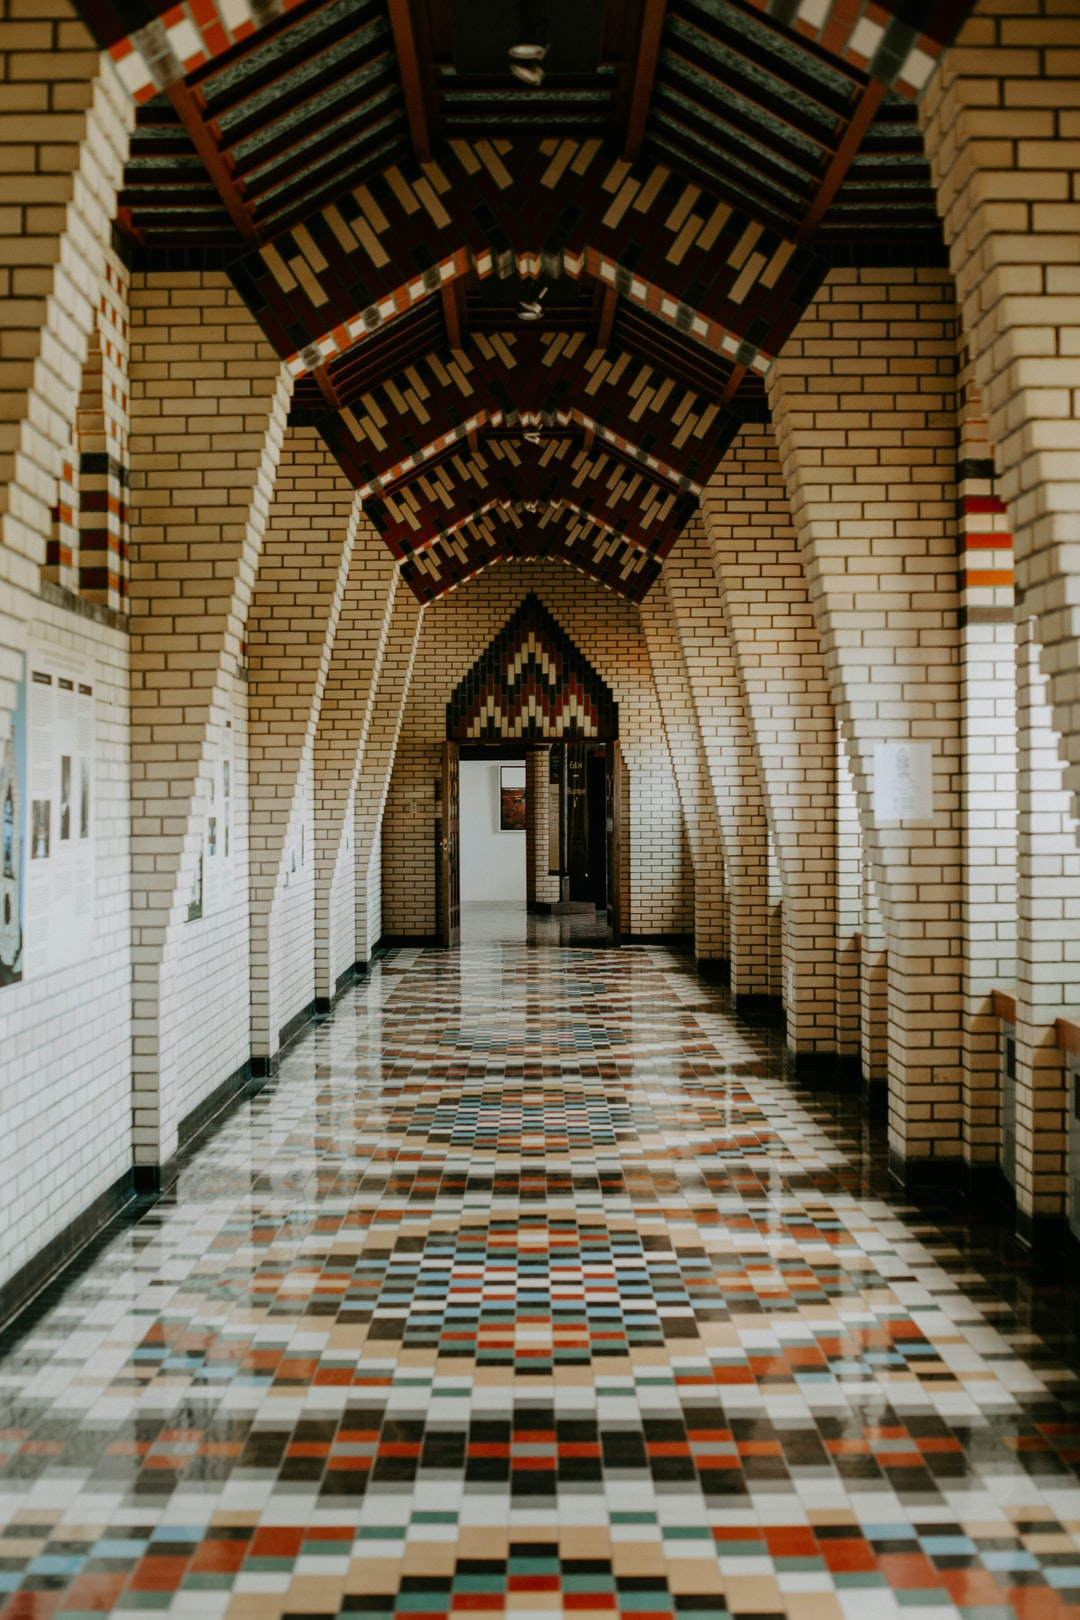 I was traveling with some friends to Quebec over a holiday weekend and we stopped by a monastery because they were known to make really good cheese. (Spoiler: the cheese shop had closed for the day) but we did wander around the place for a bit. I really liked this hallway because it reminded me of a corridor you'd walk down if you went to a public school, college, or other government building - but in the best kind of way. It was dated but warm, nothing stood out too much, but it still has some visual interest It created a sort of nostalgia for me and I was digging that.